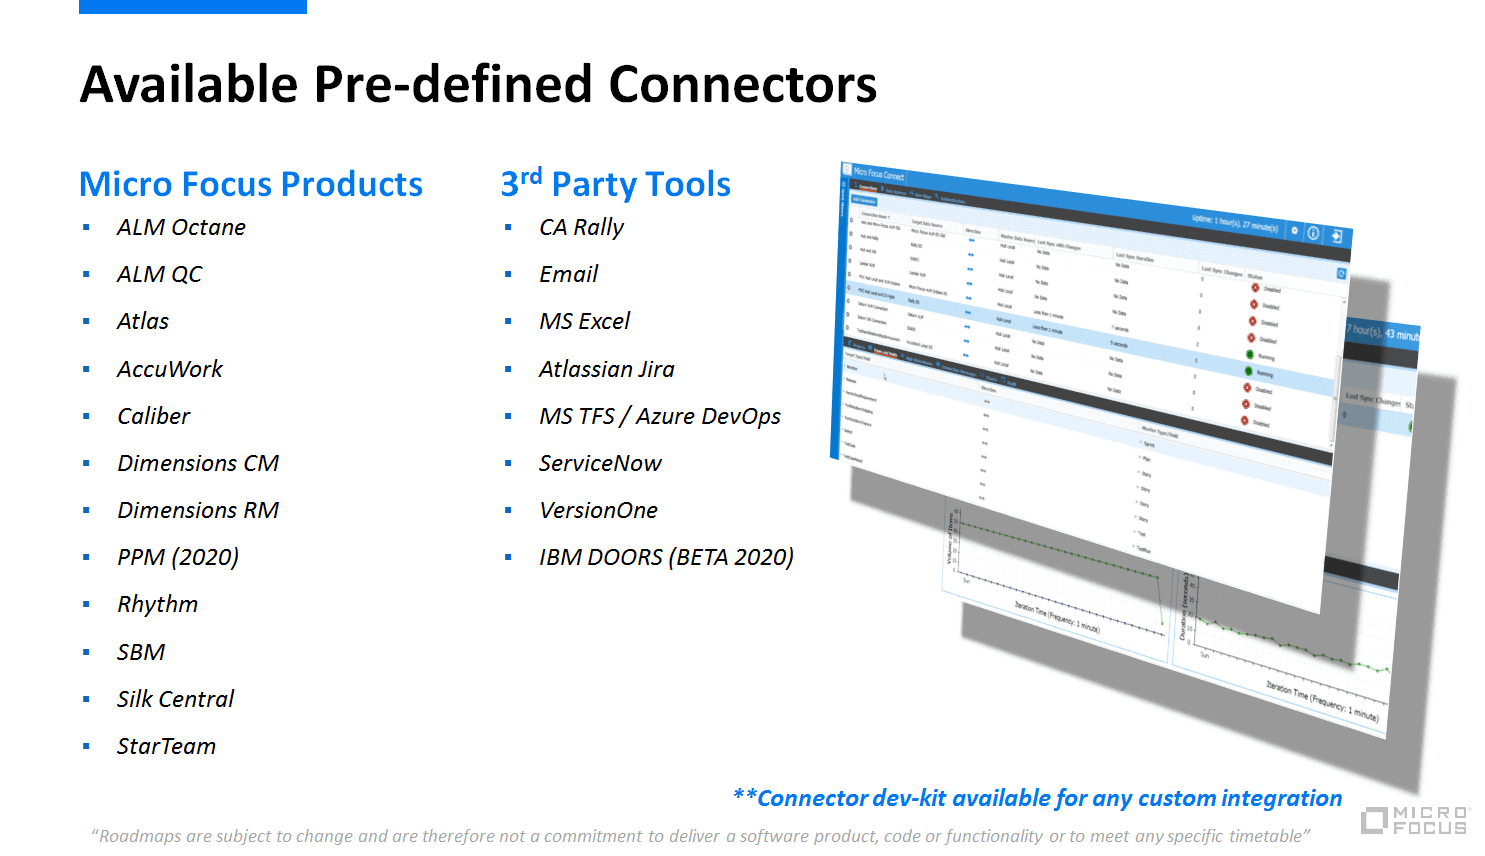 Available Connectors